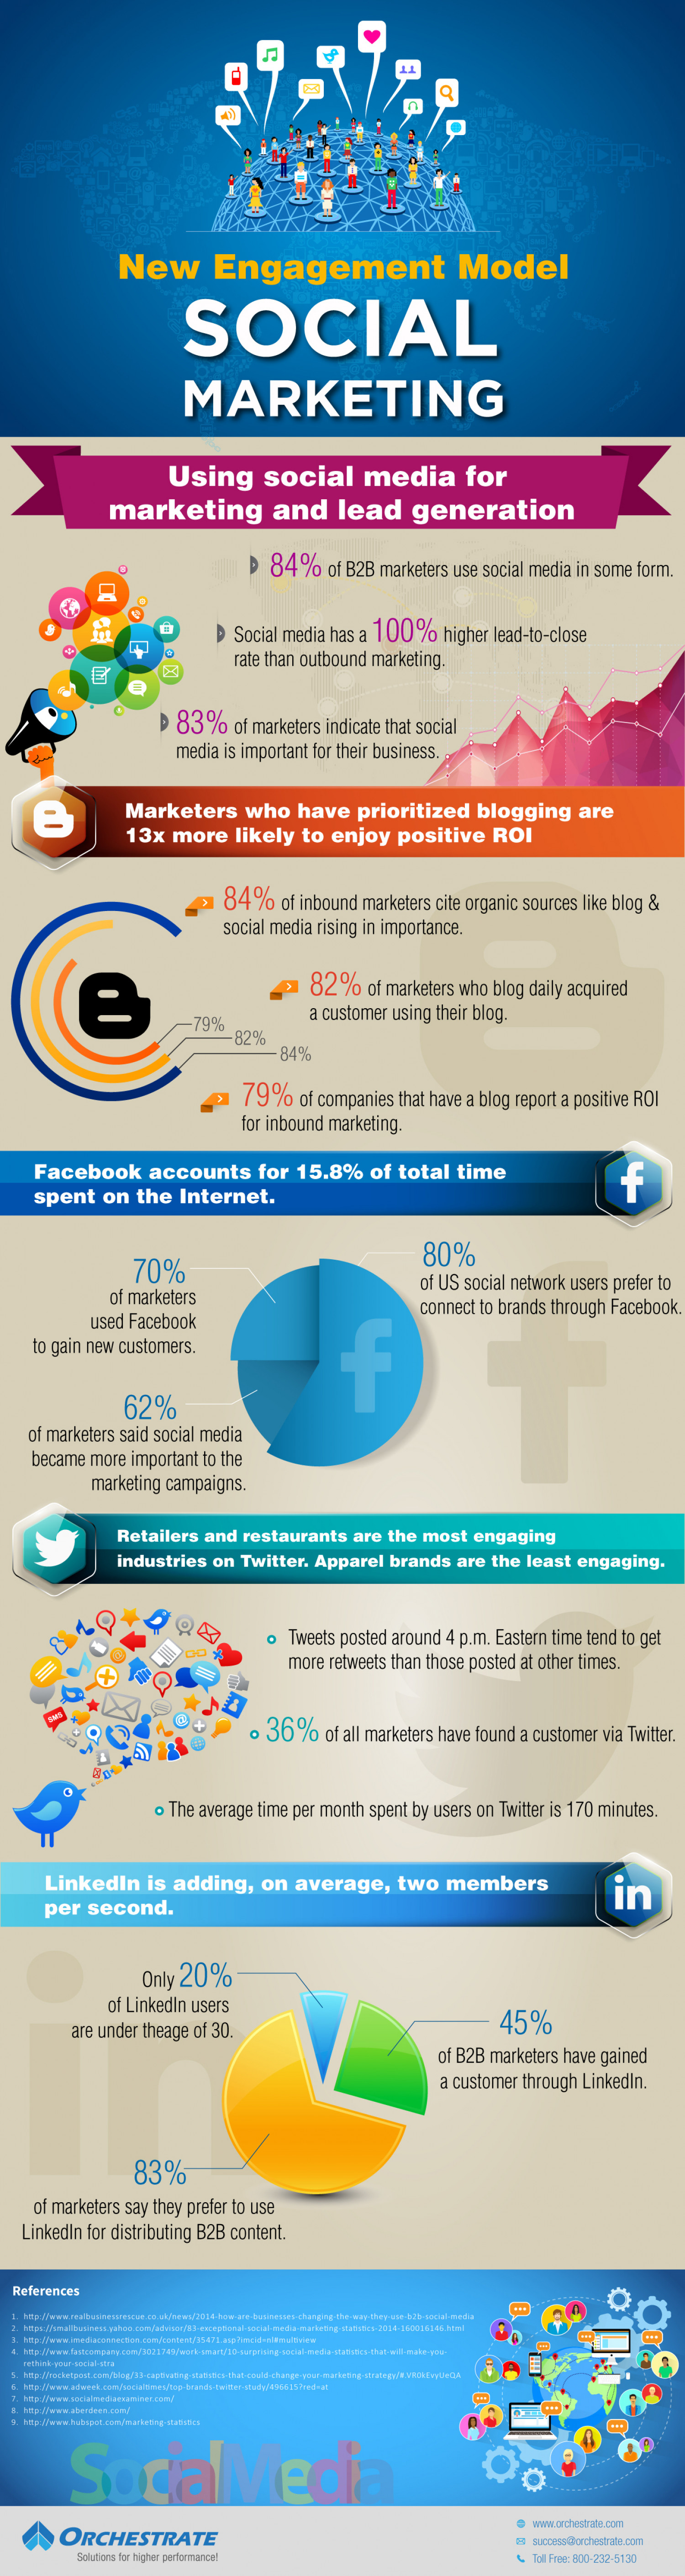 New Engagement Model - Social Marketing Infographic